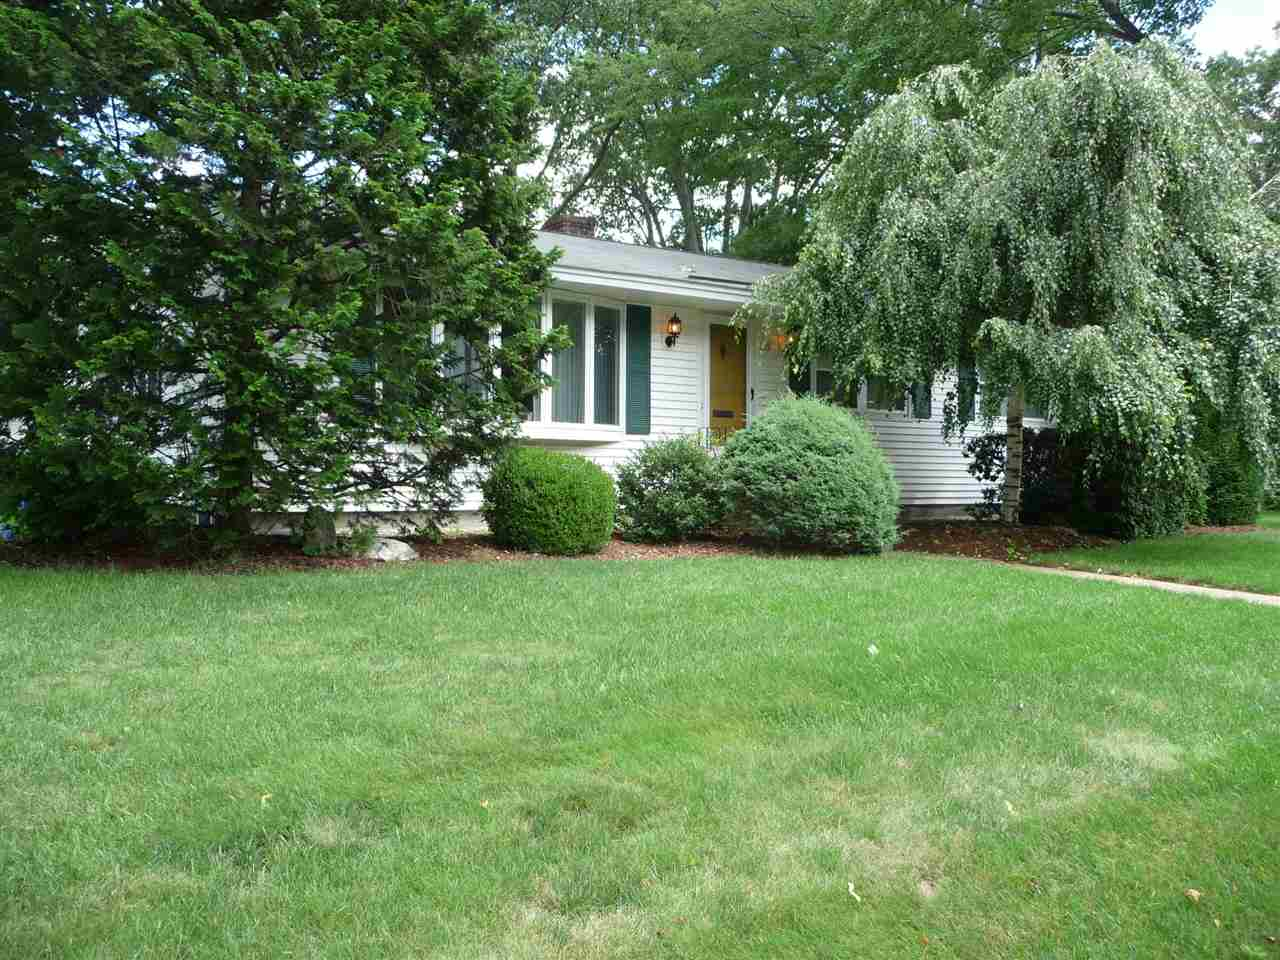 Photo of 99 Mayflower Drive Manchester, NH 03104